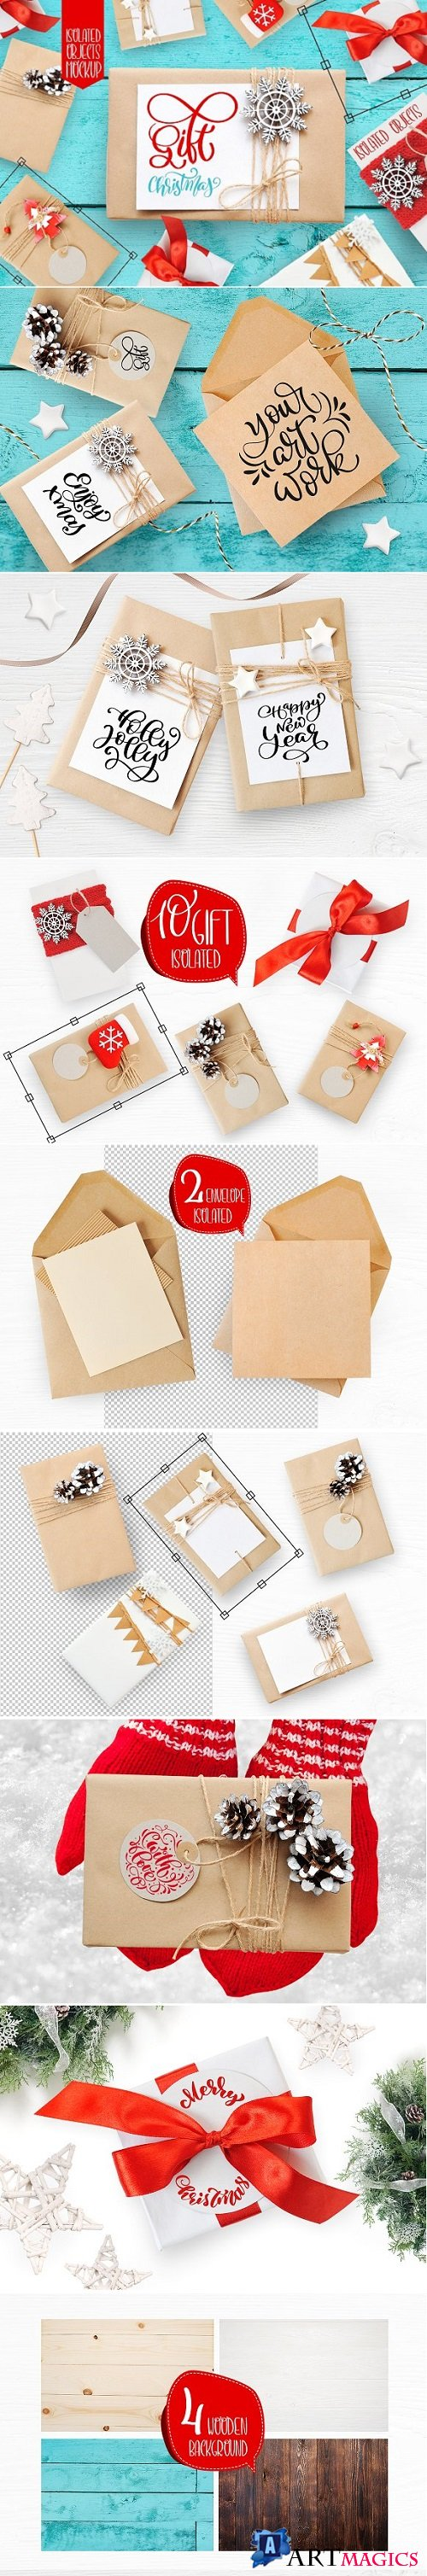 Isolated Gift Christmas Mock ups 2124129